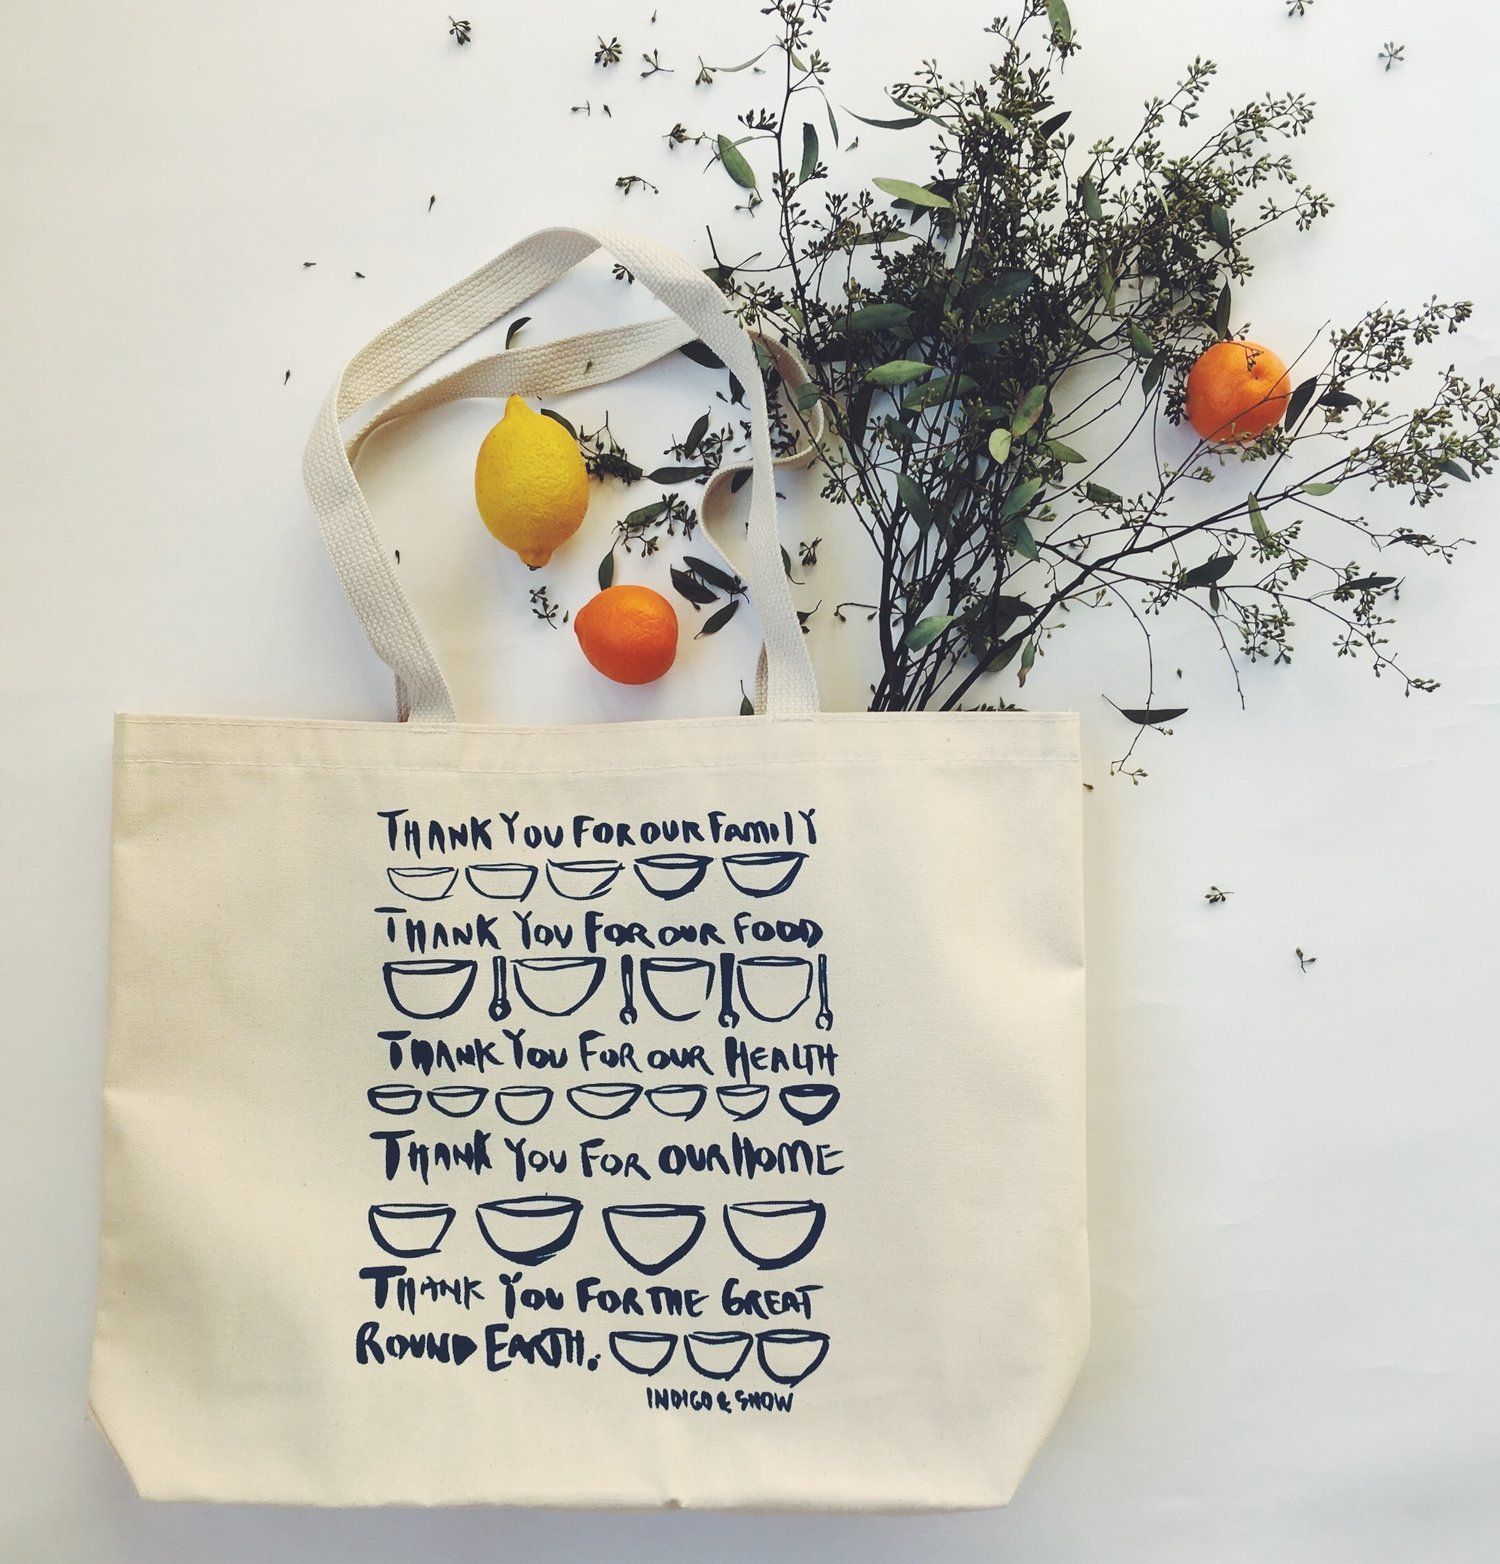 Giving Thanks Recycled Tote Bag